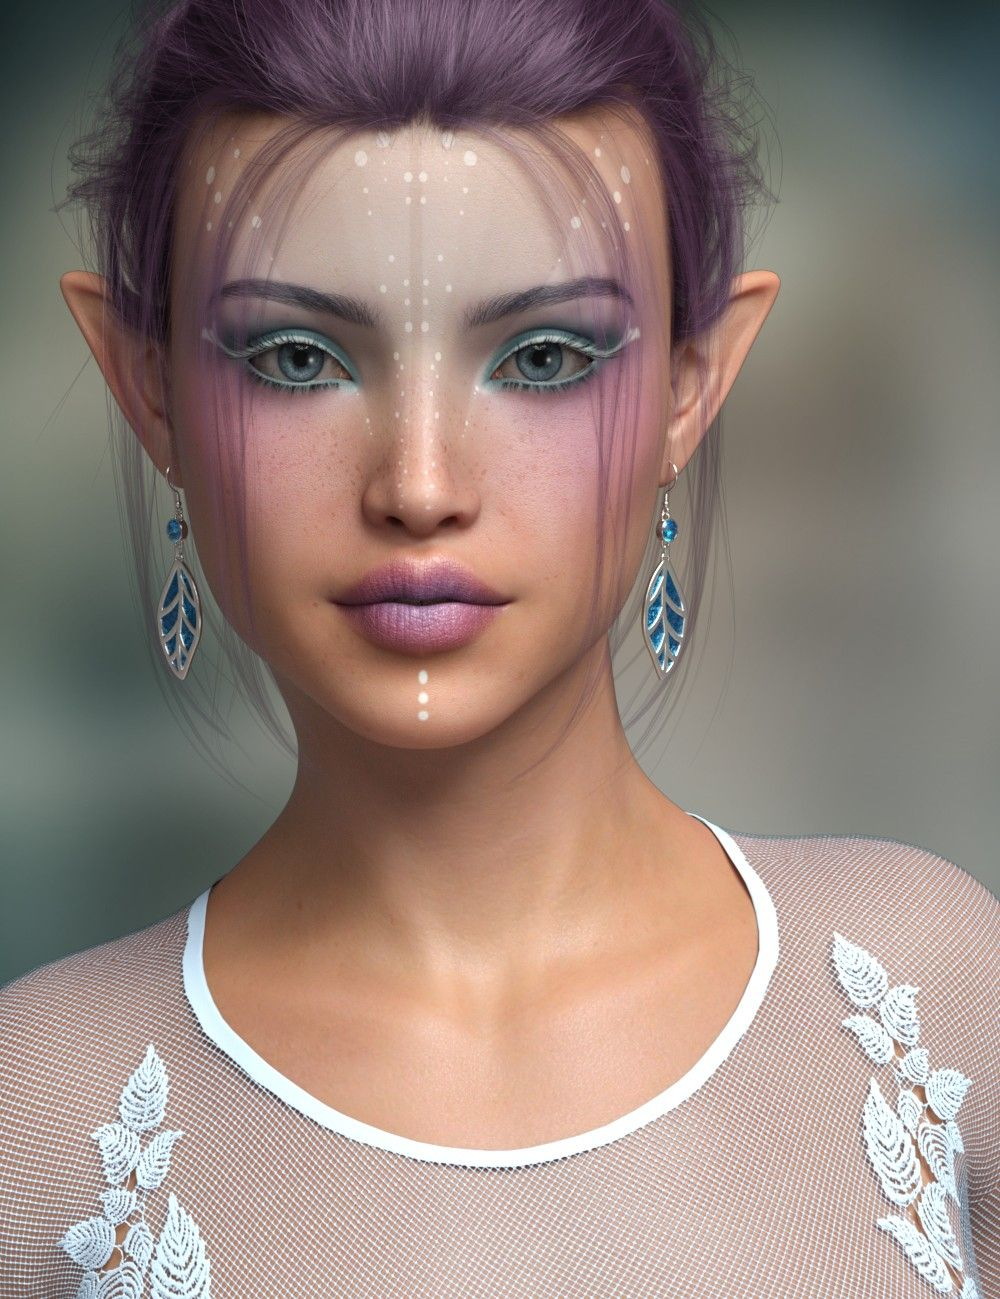 P3D Mylou for Genesis 8 Female | 3D Models and 3D Software